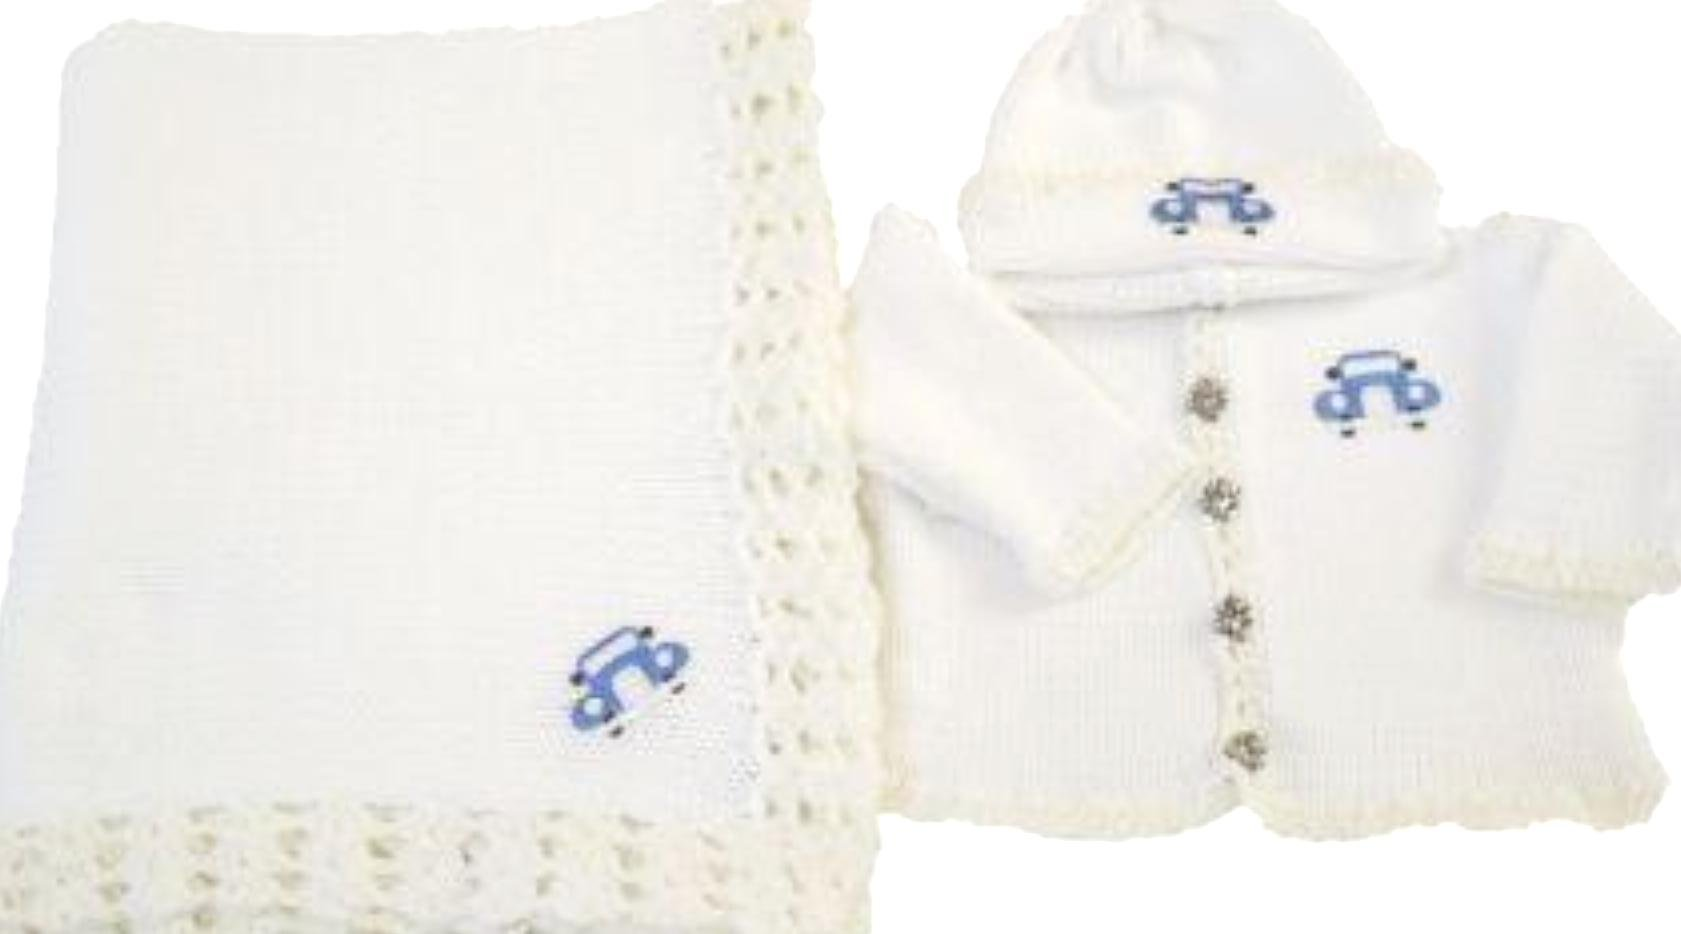 Knitted on Hand Knitting Machine White Cotton Hand Crochet Finished Infant Boys Cardigan, Hat Set Trimmed with Trimmed with Blue Race Car and Matching Large Blanket (18-24mo)